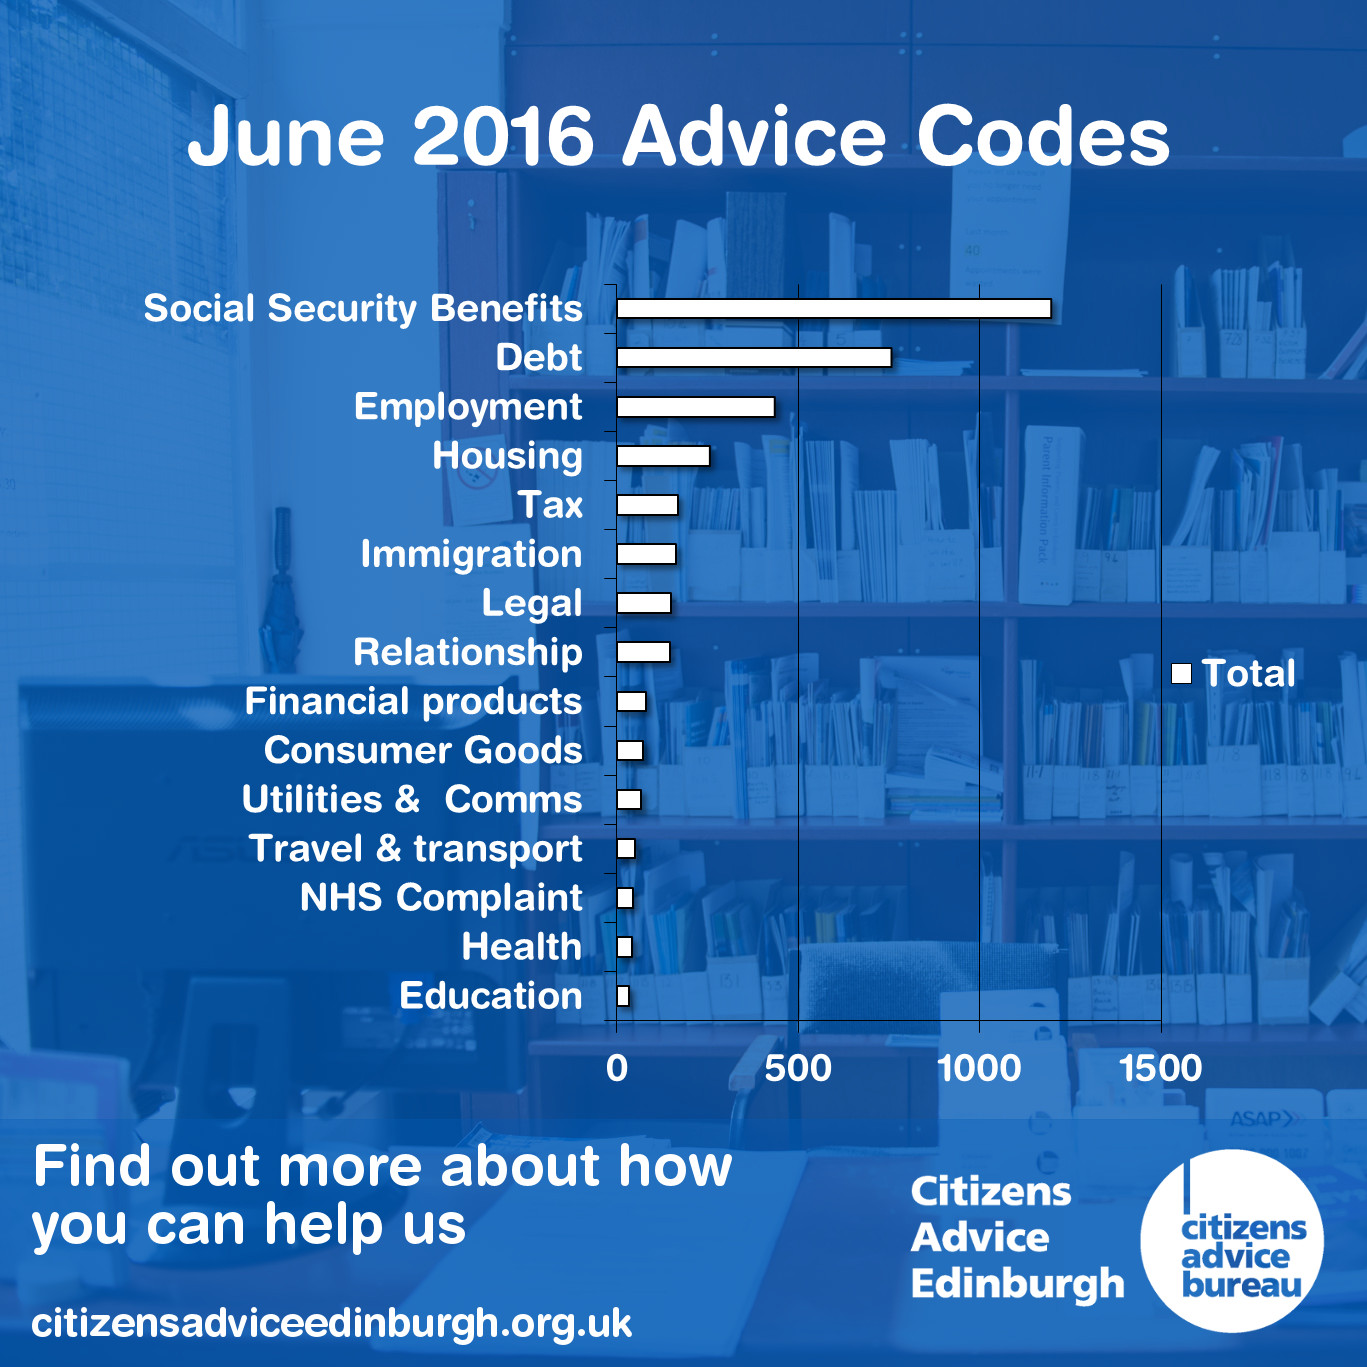 Citizens Advice Edinburgh, Advice Codes Recorded in June 2016